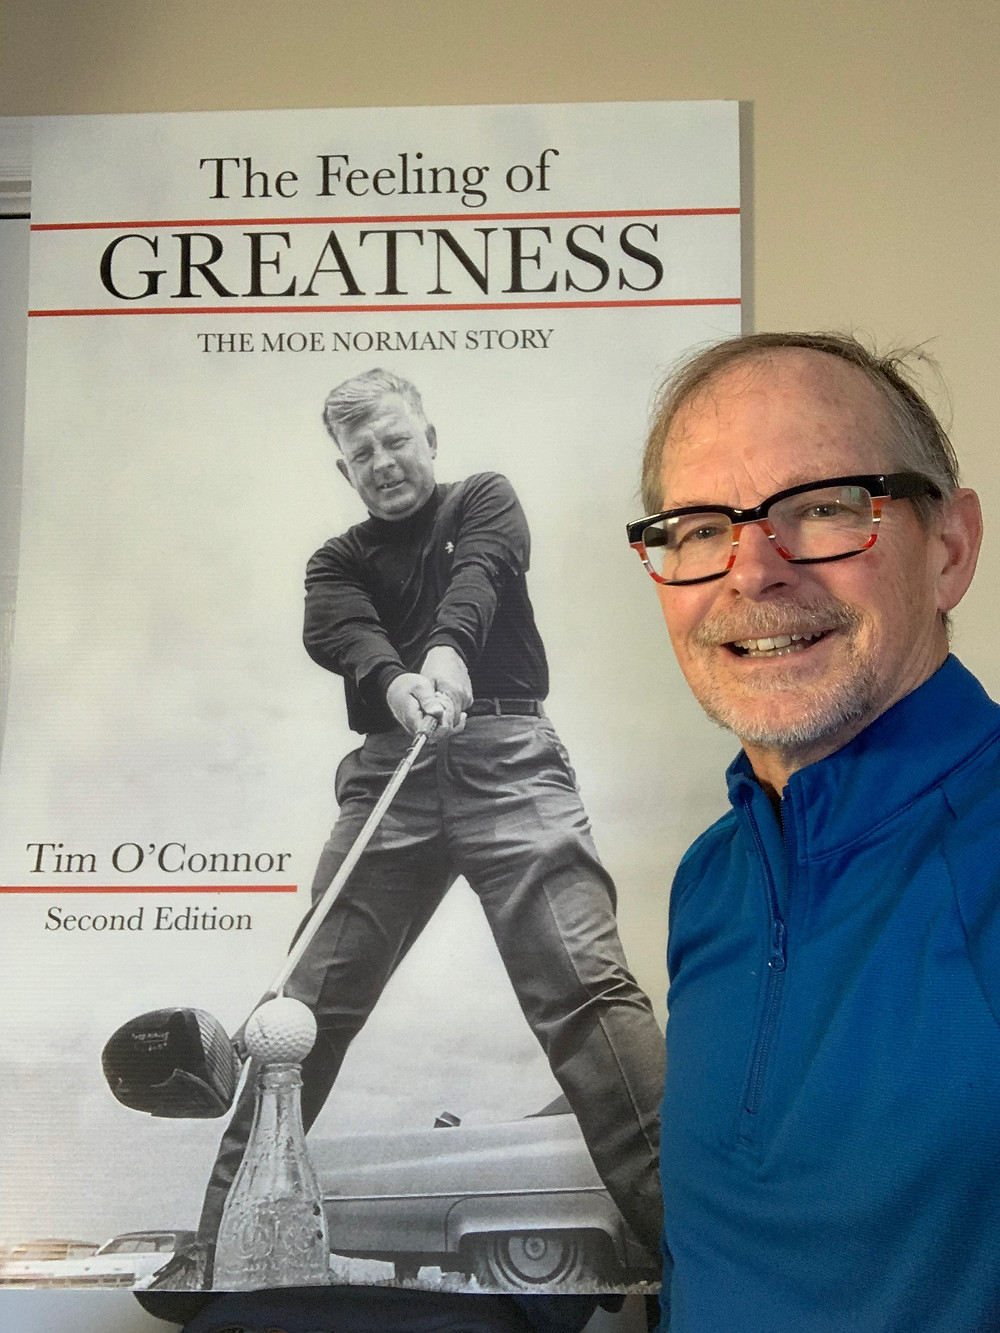 Tim O'Connor has written a biography of Moe Norman